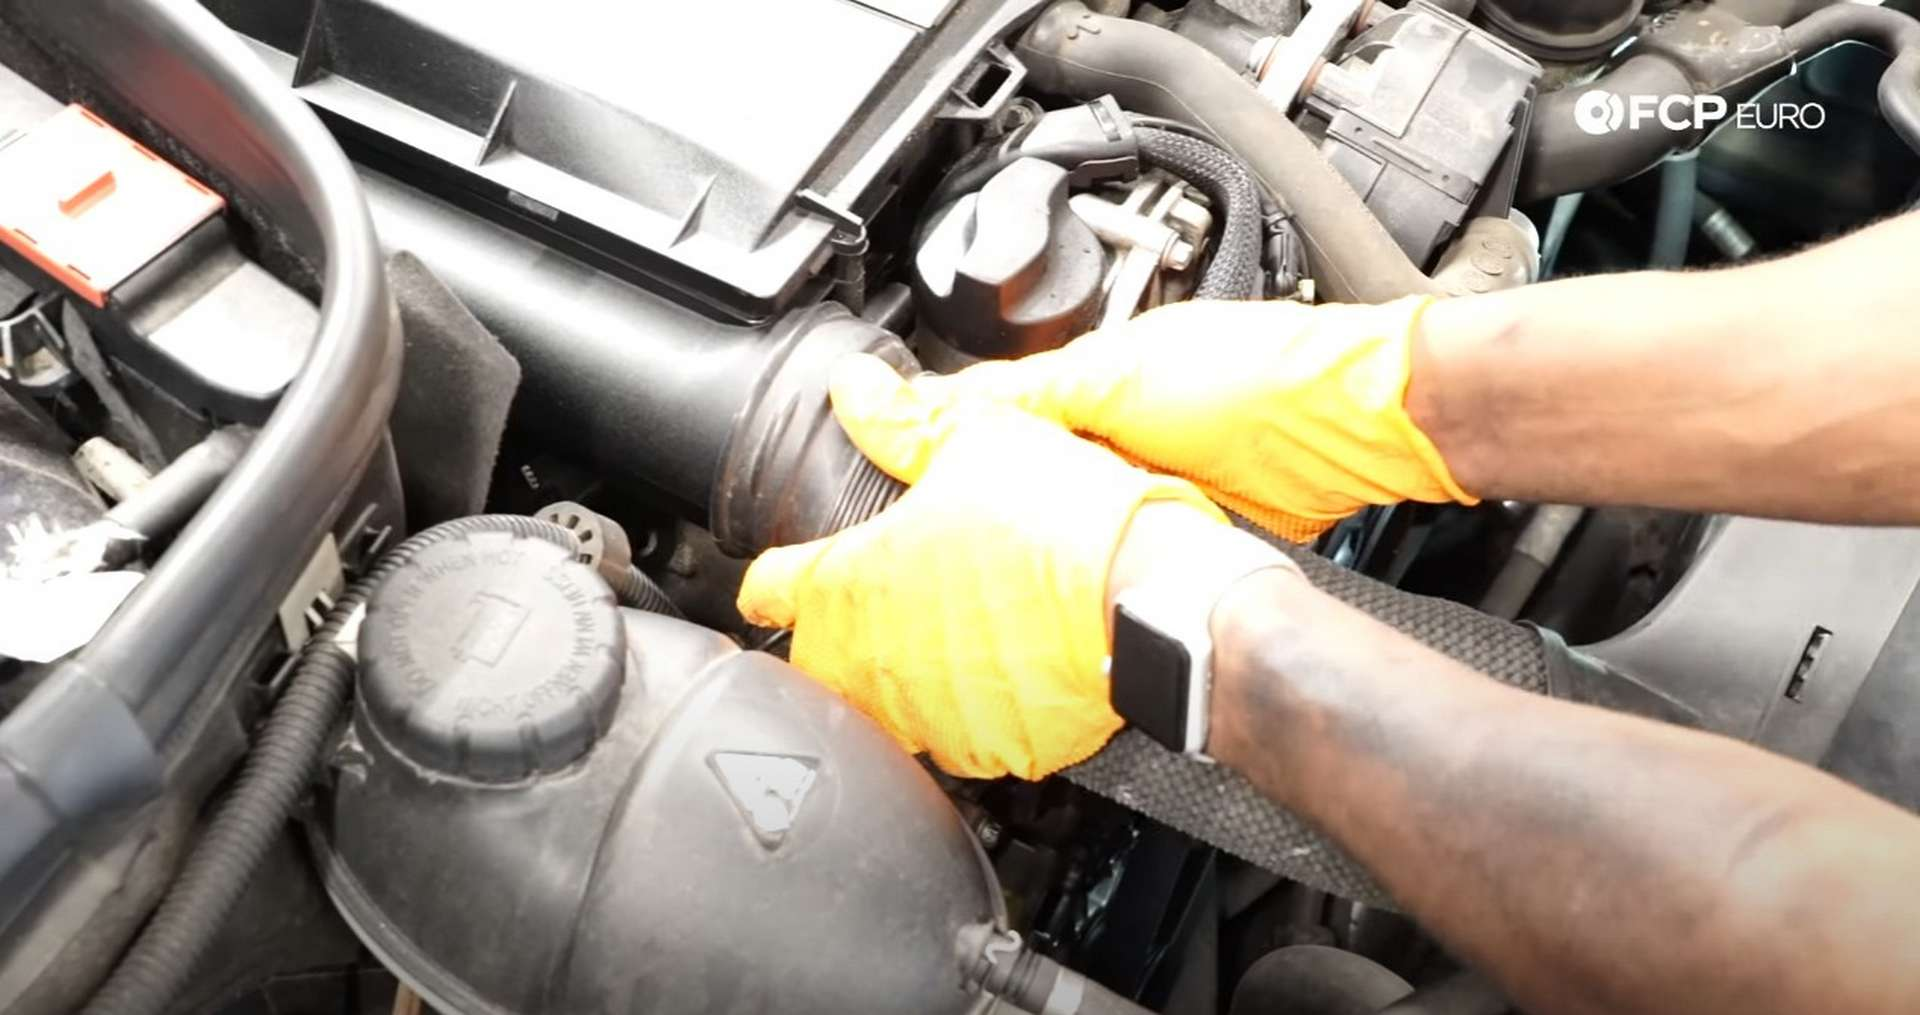 DIY Mercedes W212/204 Alternator and Drive Belt Replacement reconnecting the intake